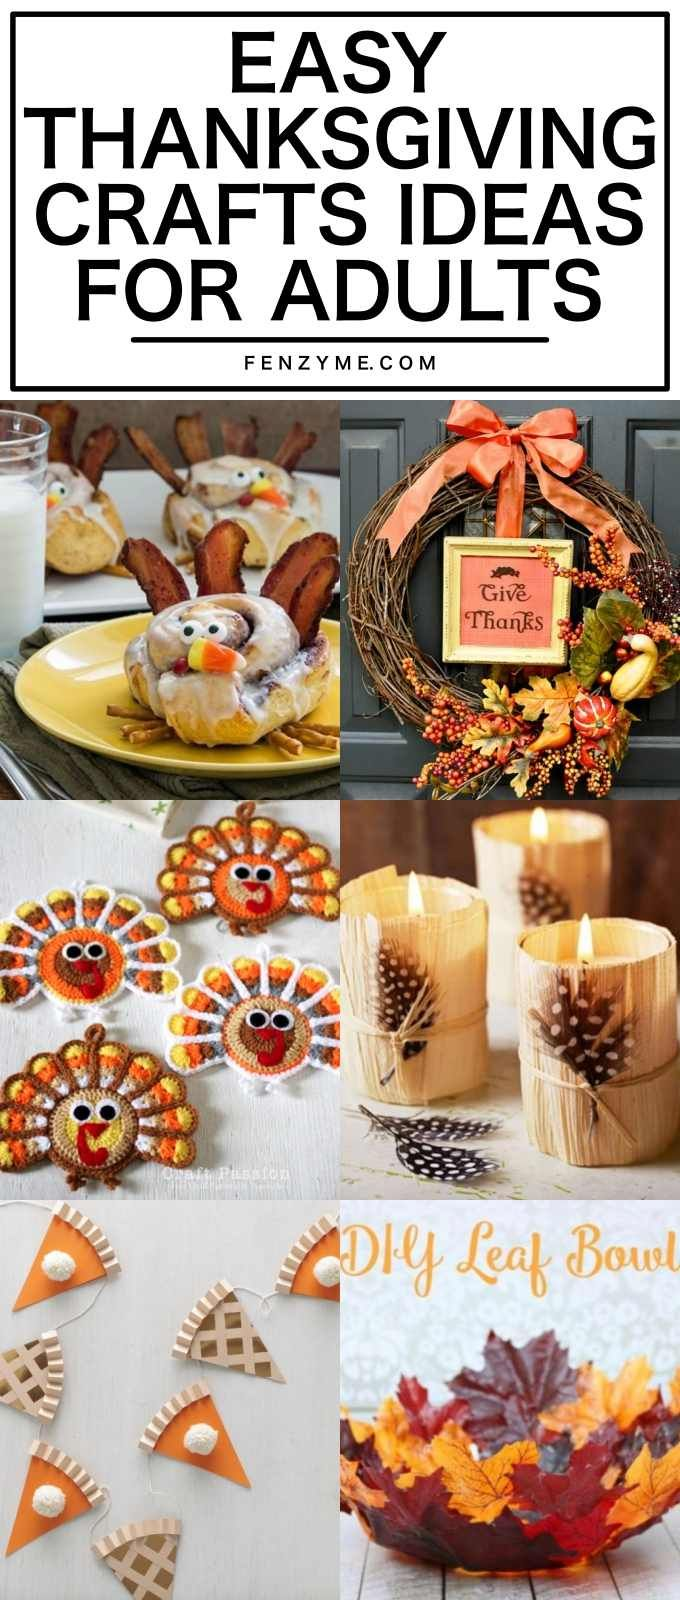 41++ Turkey craft ideas for adults info